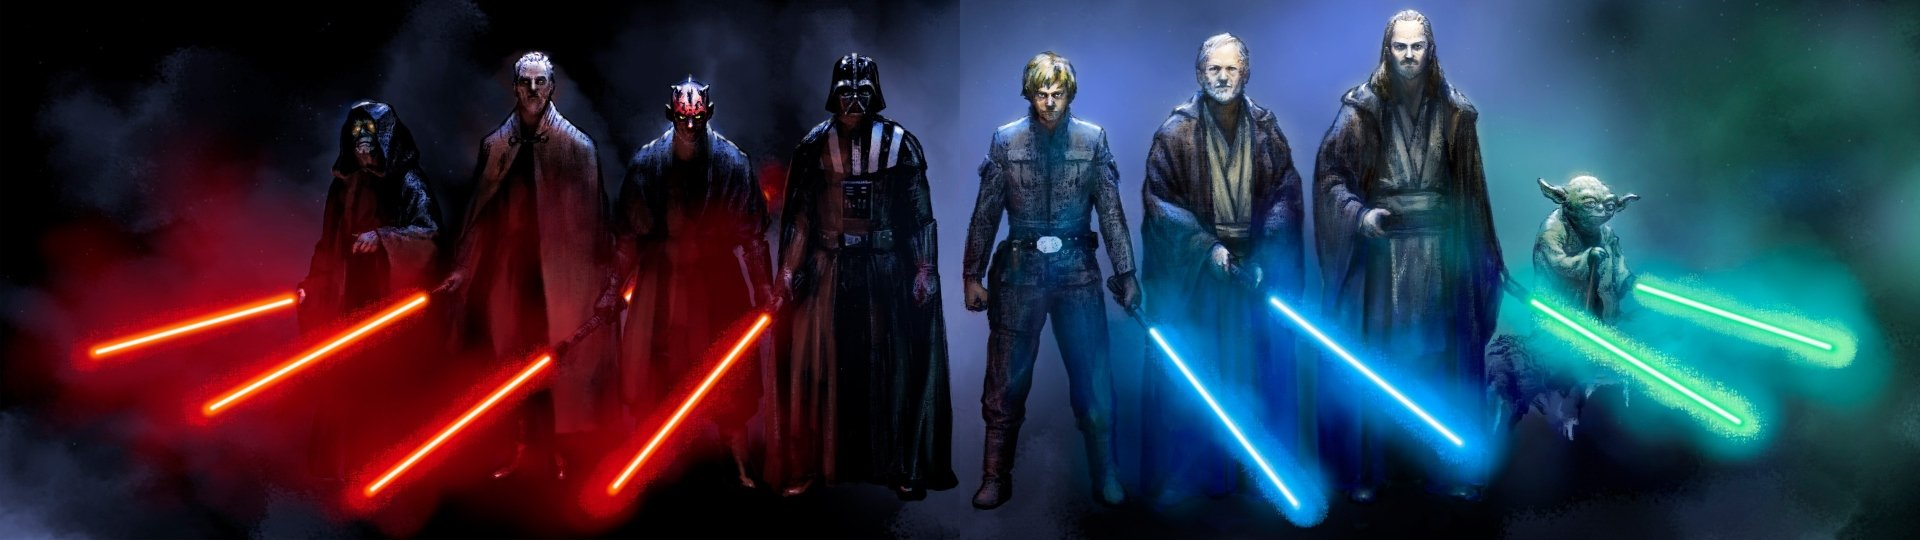 Sci Fi - Star Wars  Darth Vader Darth Maul Yoda Obi-Wan Kenobi Sith (Star Wars) Jedi Lightsaber Qui-gon Jinn Wallpaper